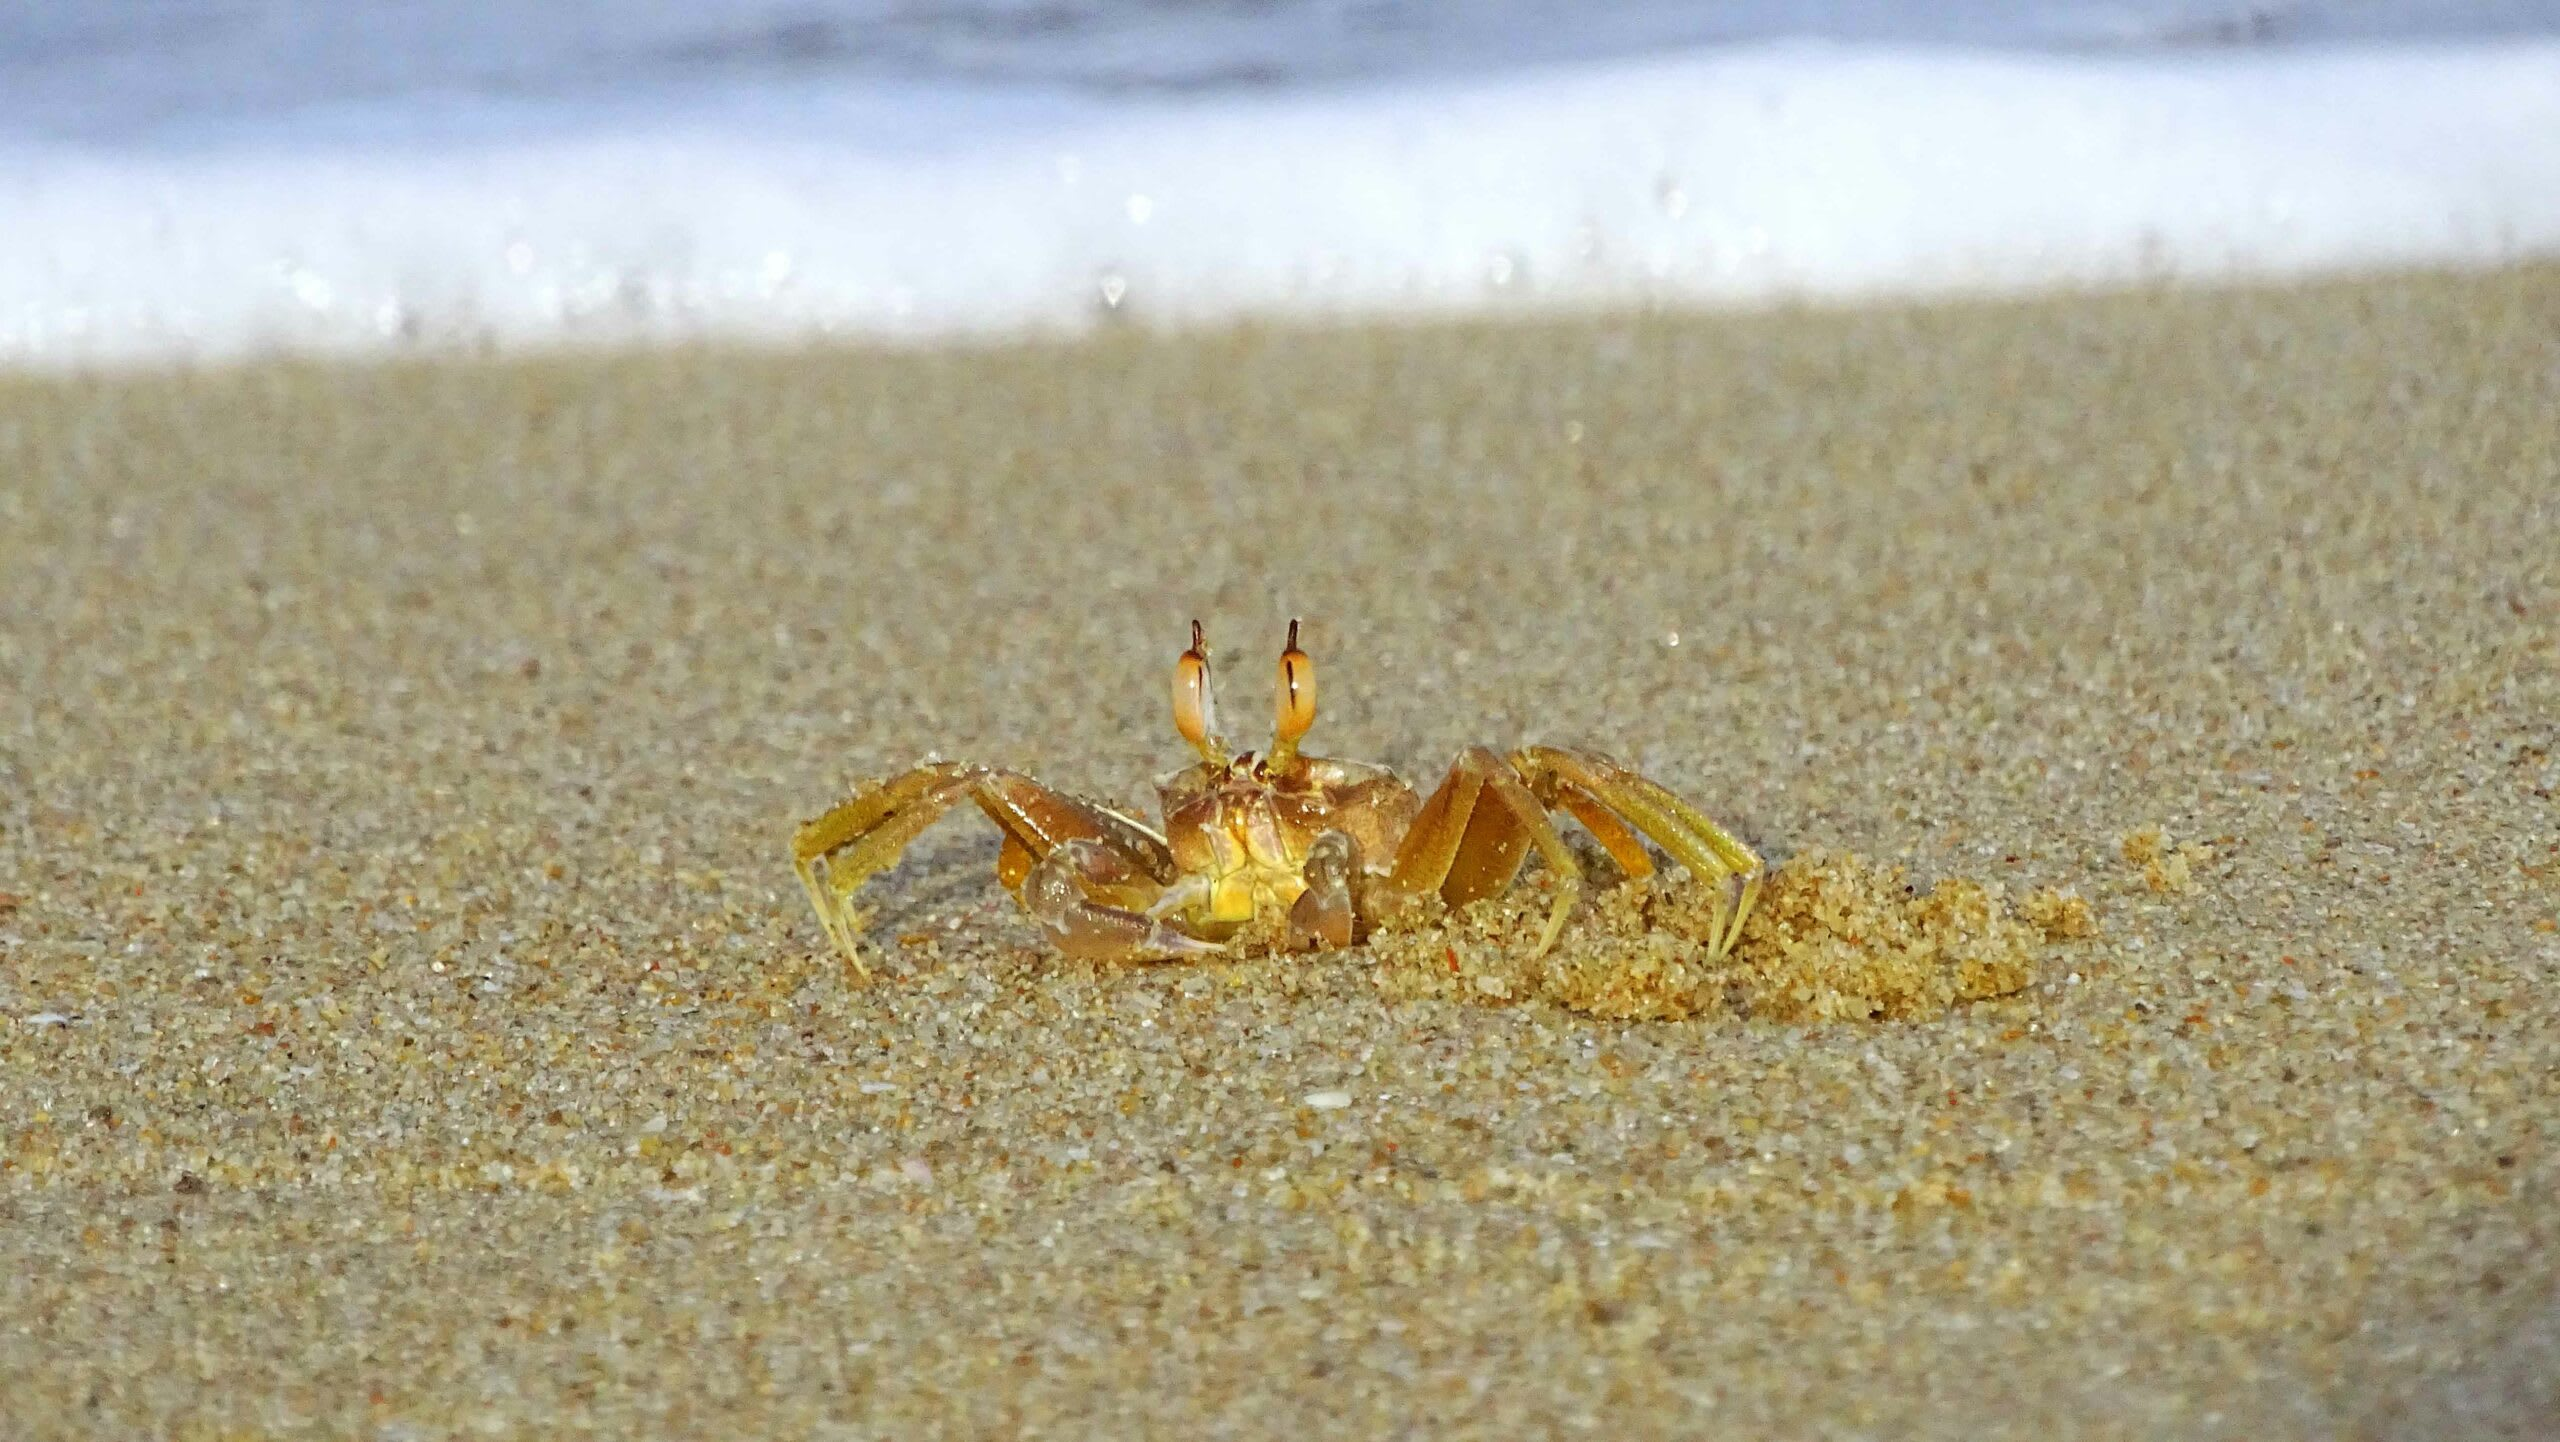 A young horn-eyed ghost crab rests beside its burrow. All ghost crabs build complex, deep burrows. They stay hidden in them during the hottest part of the day and step out to forage when the sun isn't as sharp.